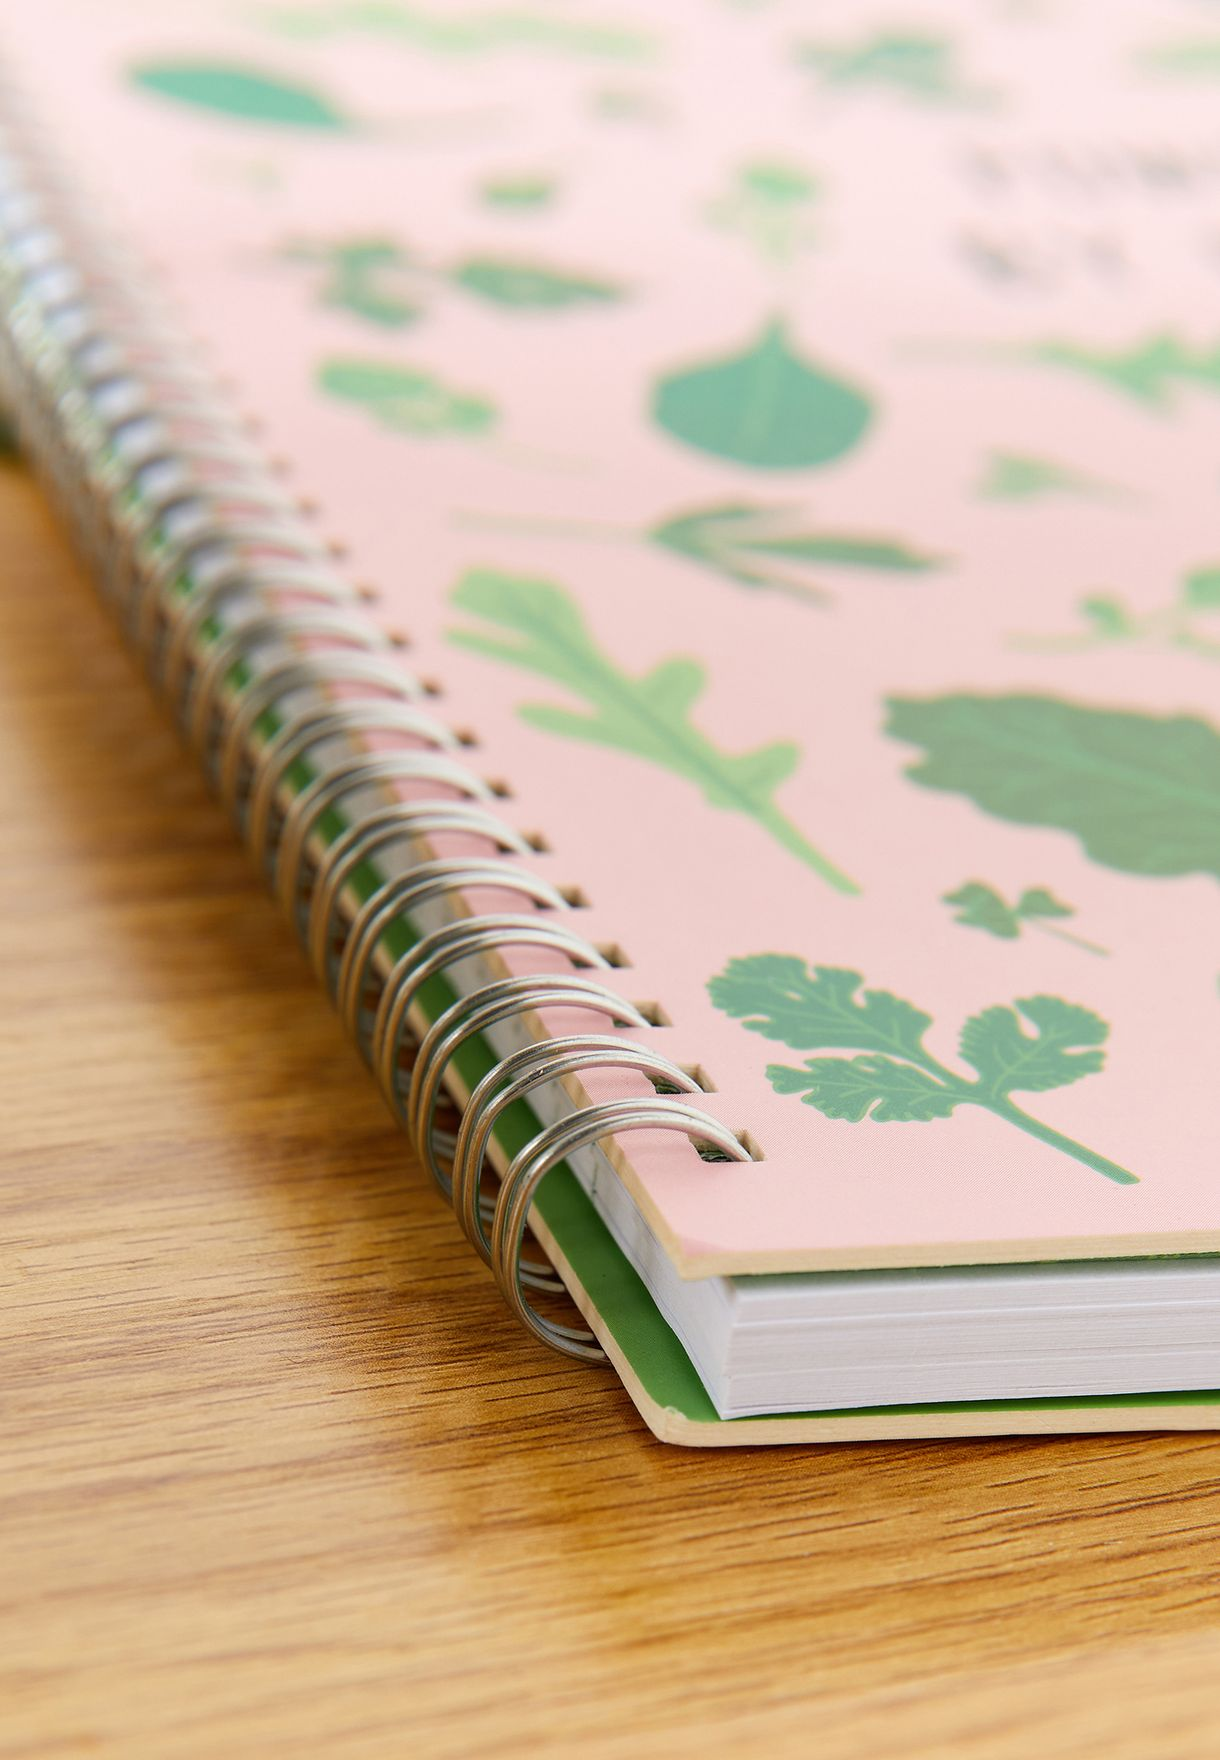 A4 Powered By Plants Notebook